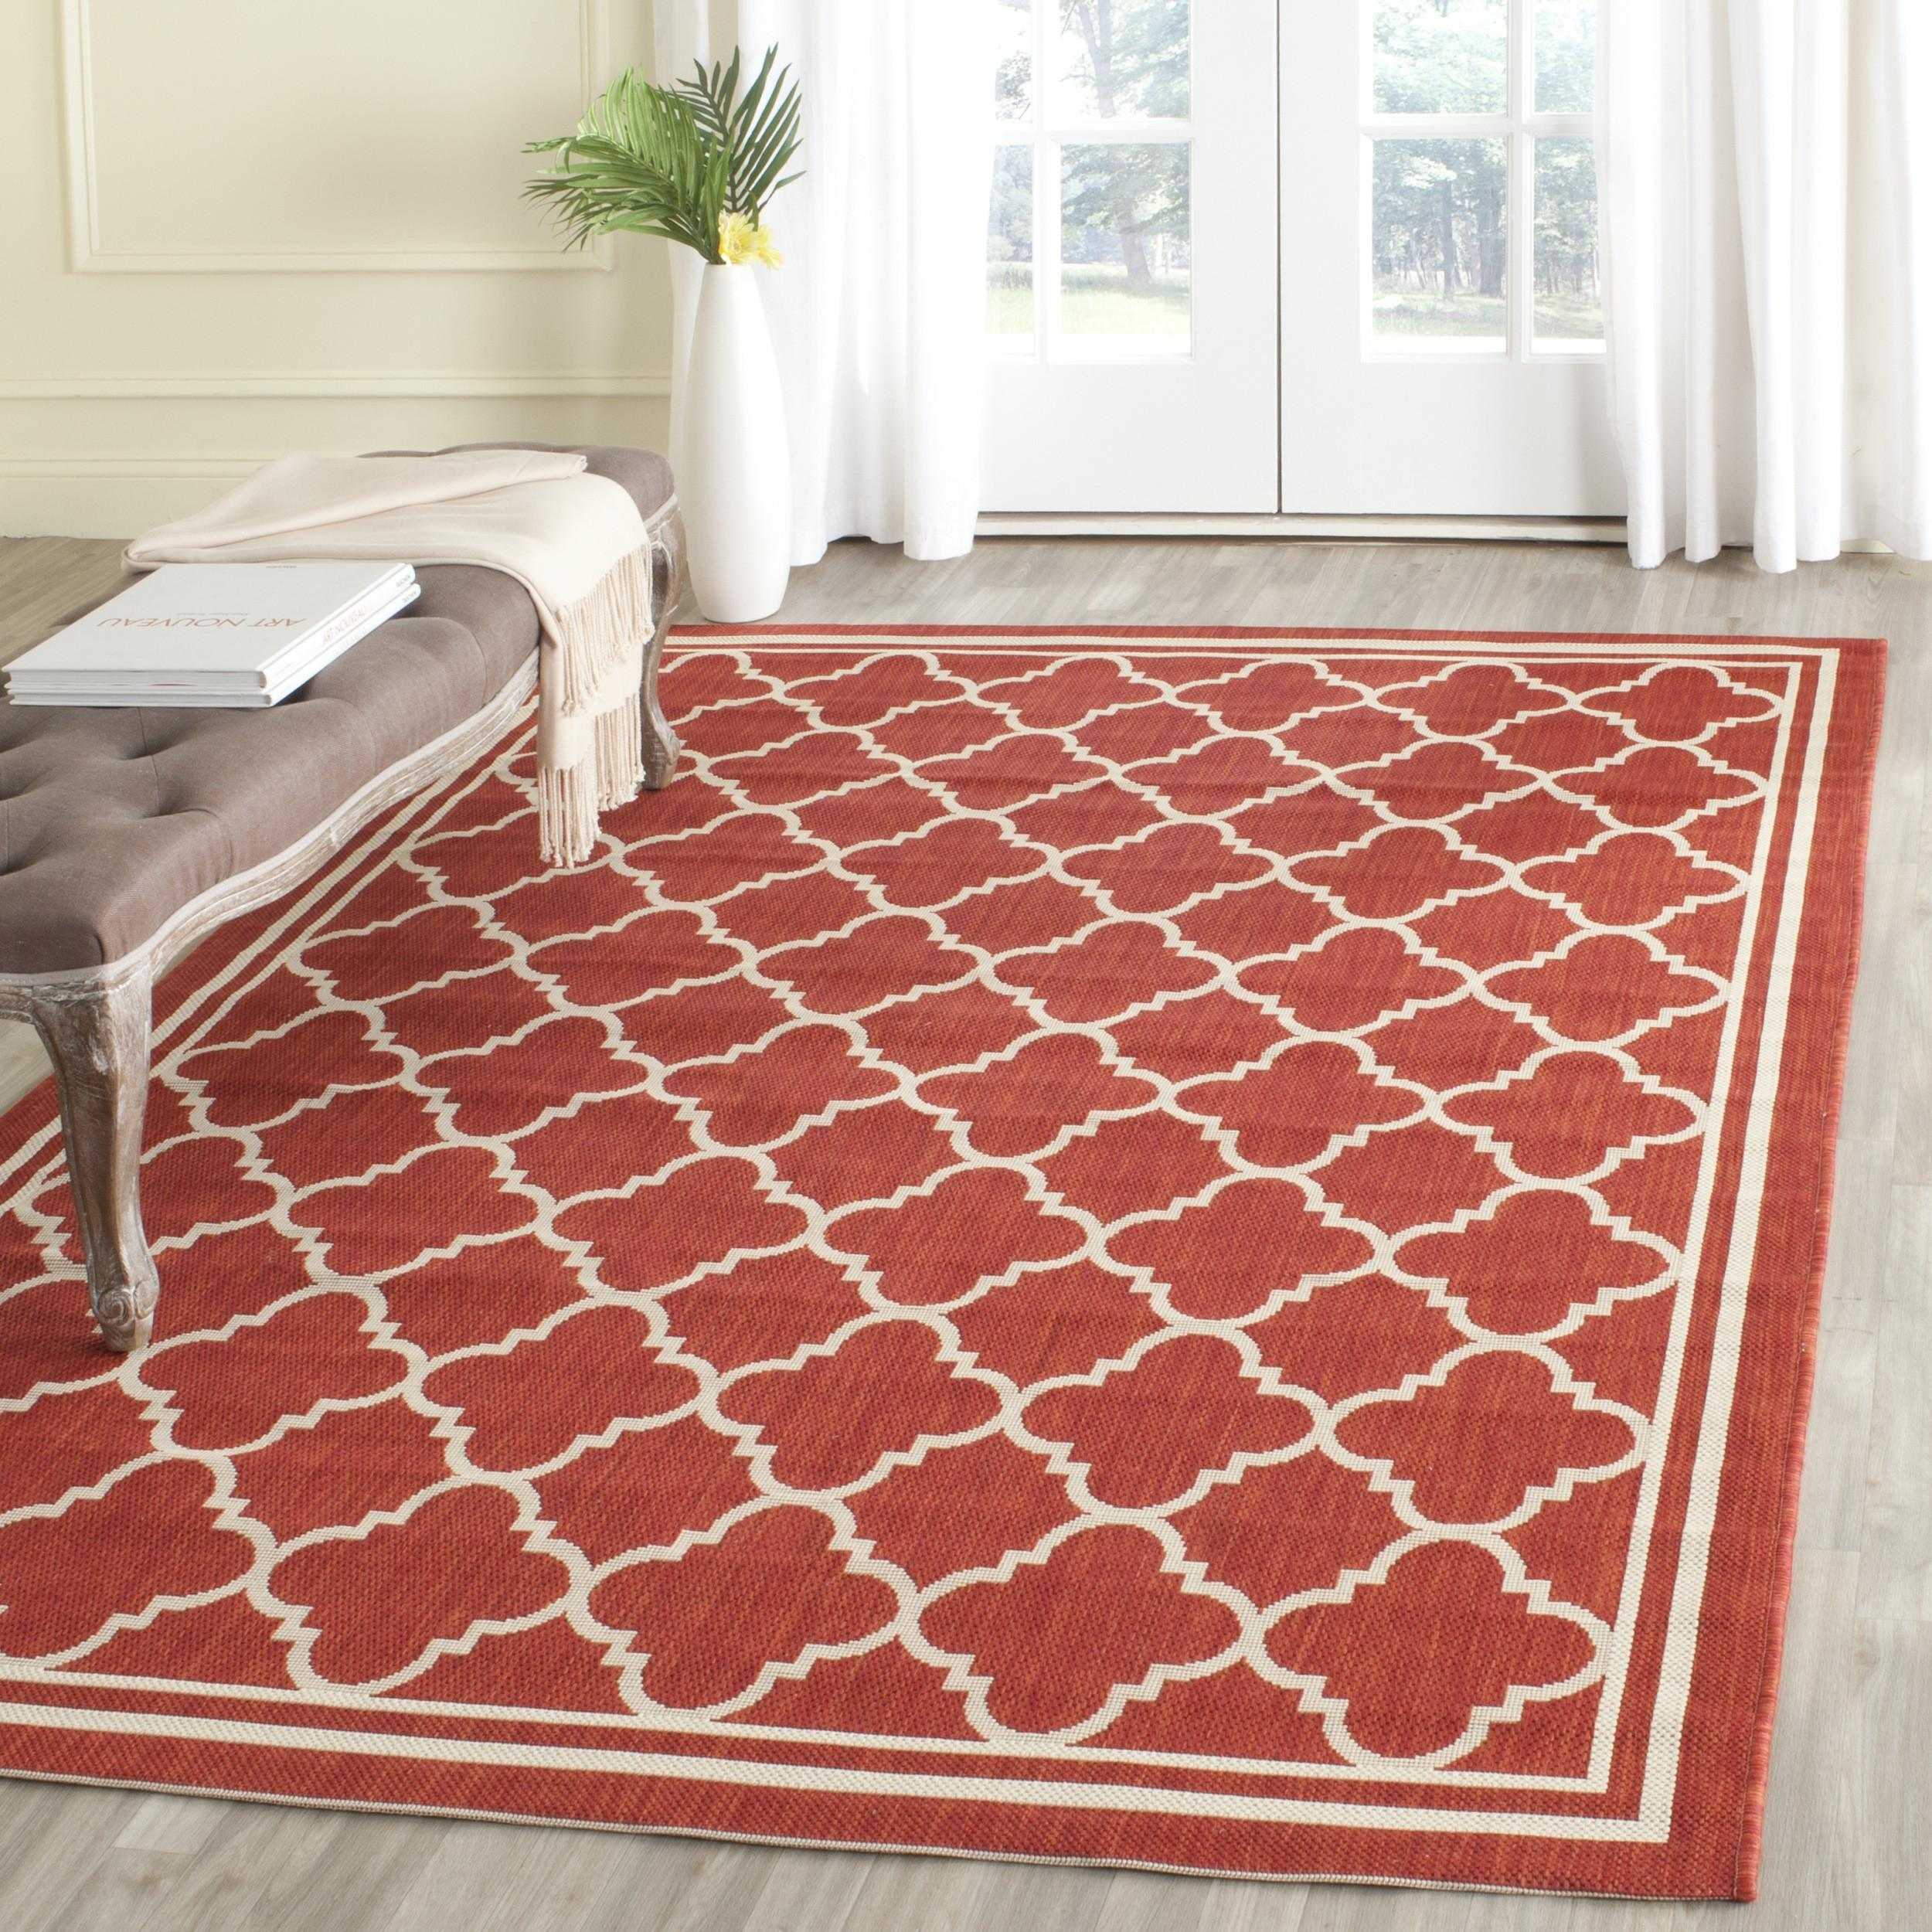 Safavieh Courtyard Red Bone Indoor Outdoor Area Rug